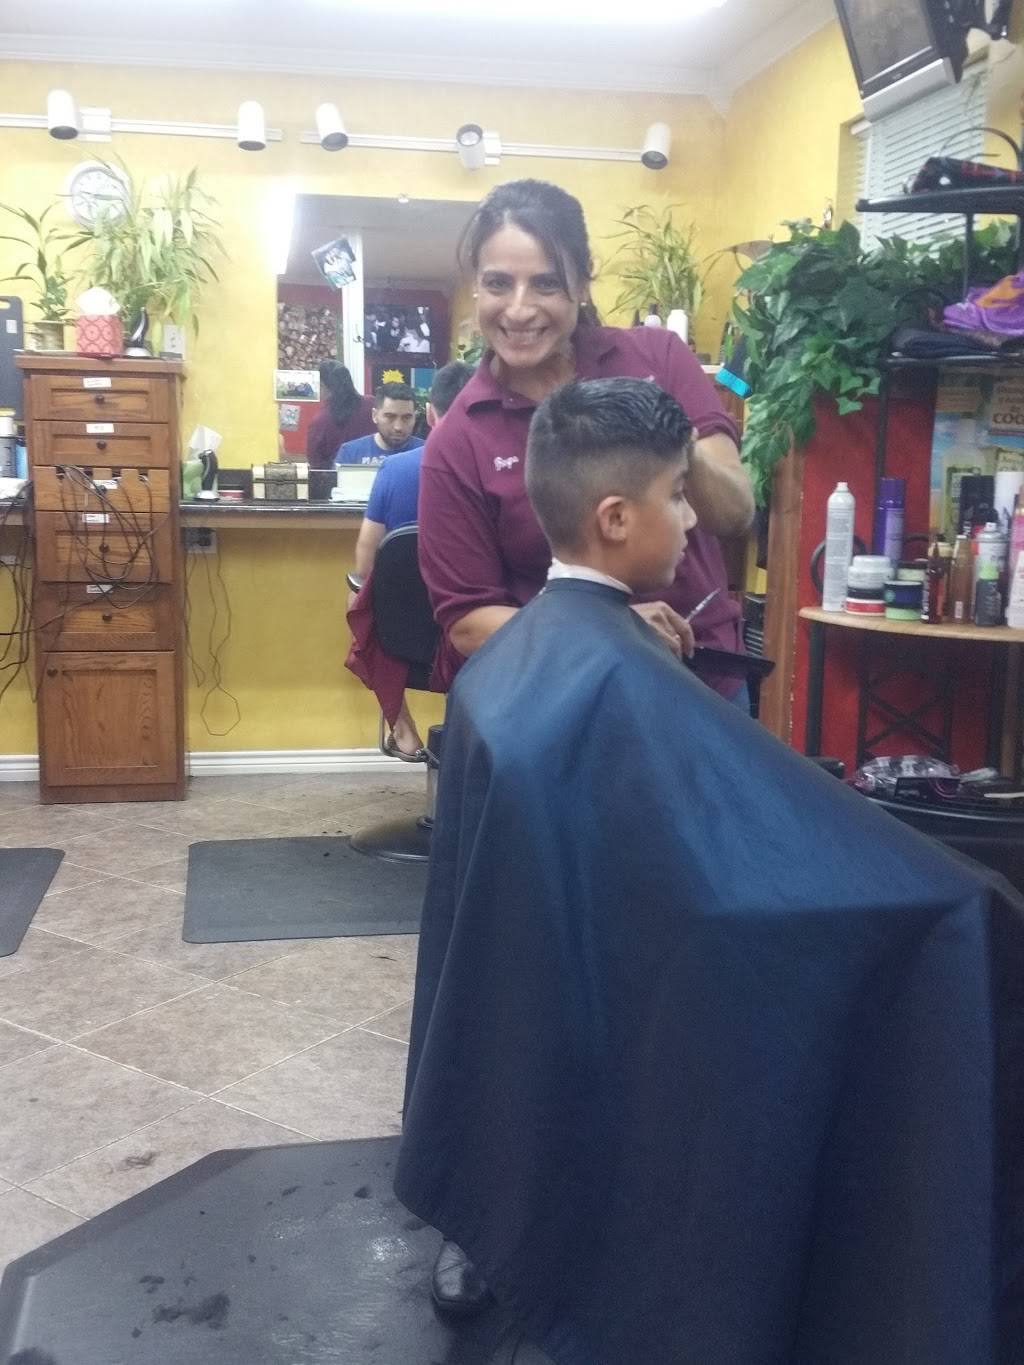 Shear Excellence - hair care  | Photo 4 of 5 | Address: 4841 McCart Ave, Fort Worth, TX 76115, USA | Phone: (817) 924-2712